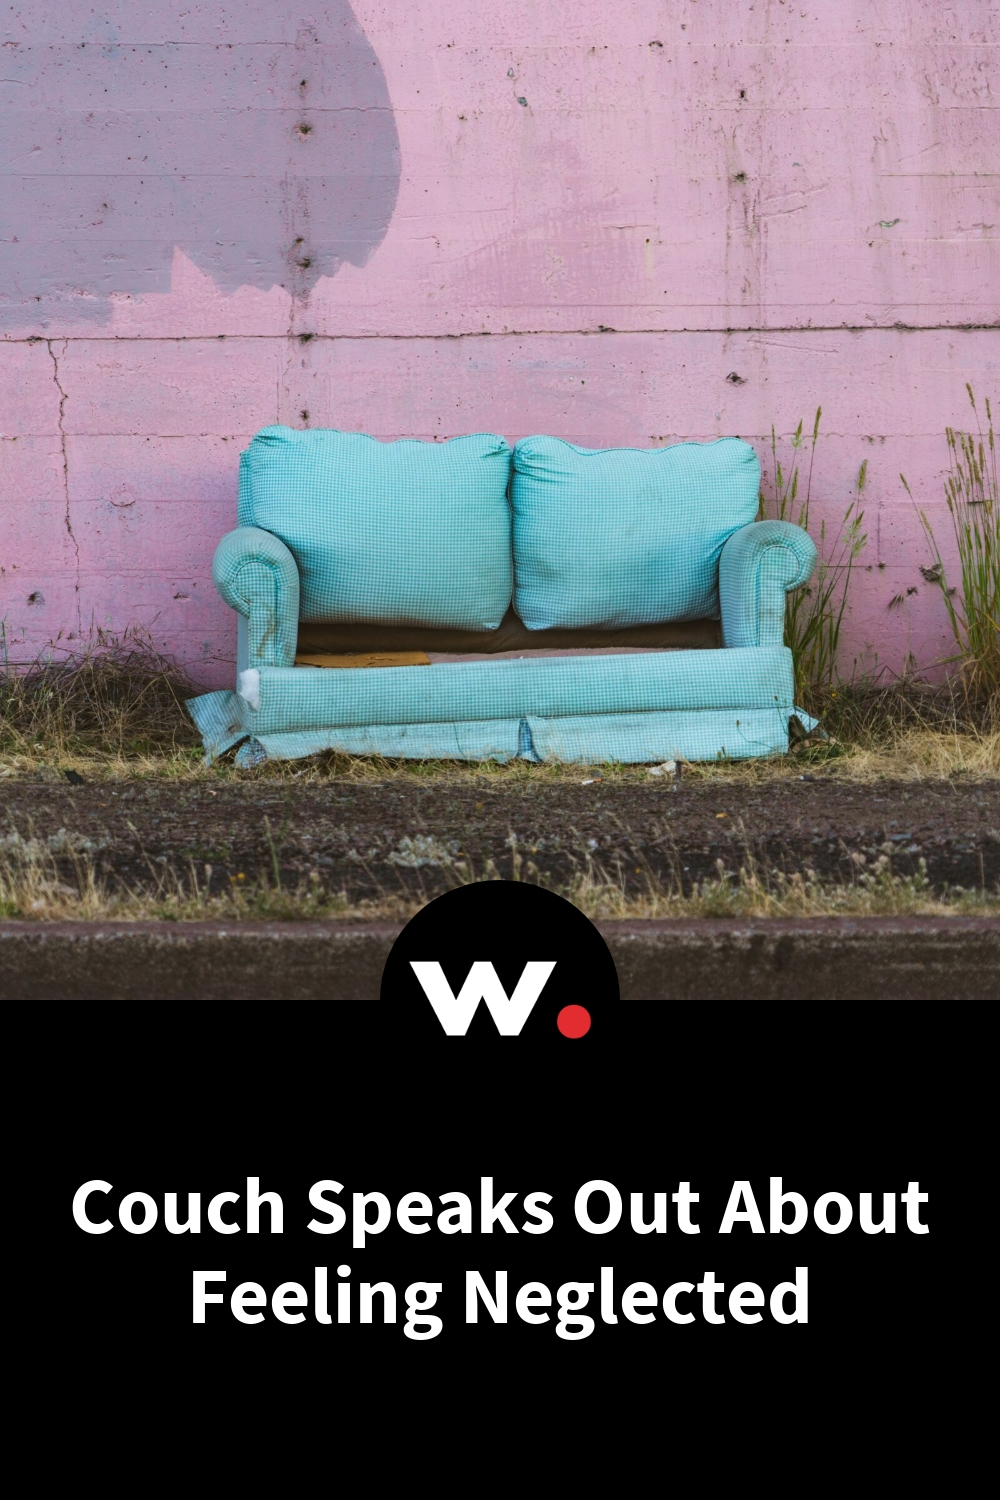 Couch Speaks Out About Feeling Neglected